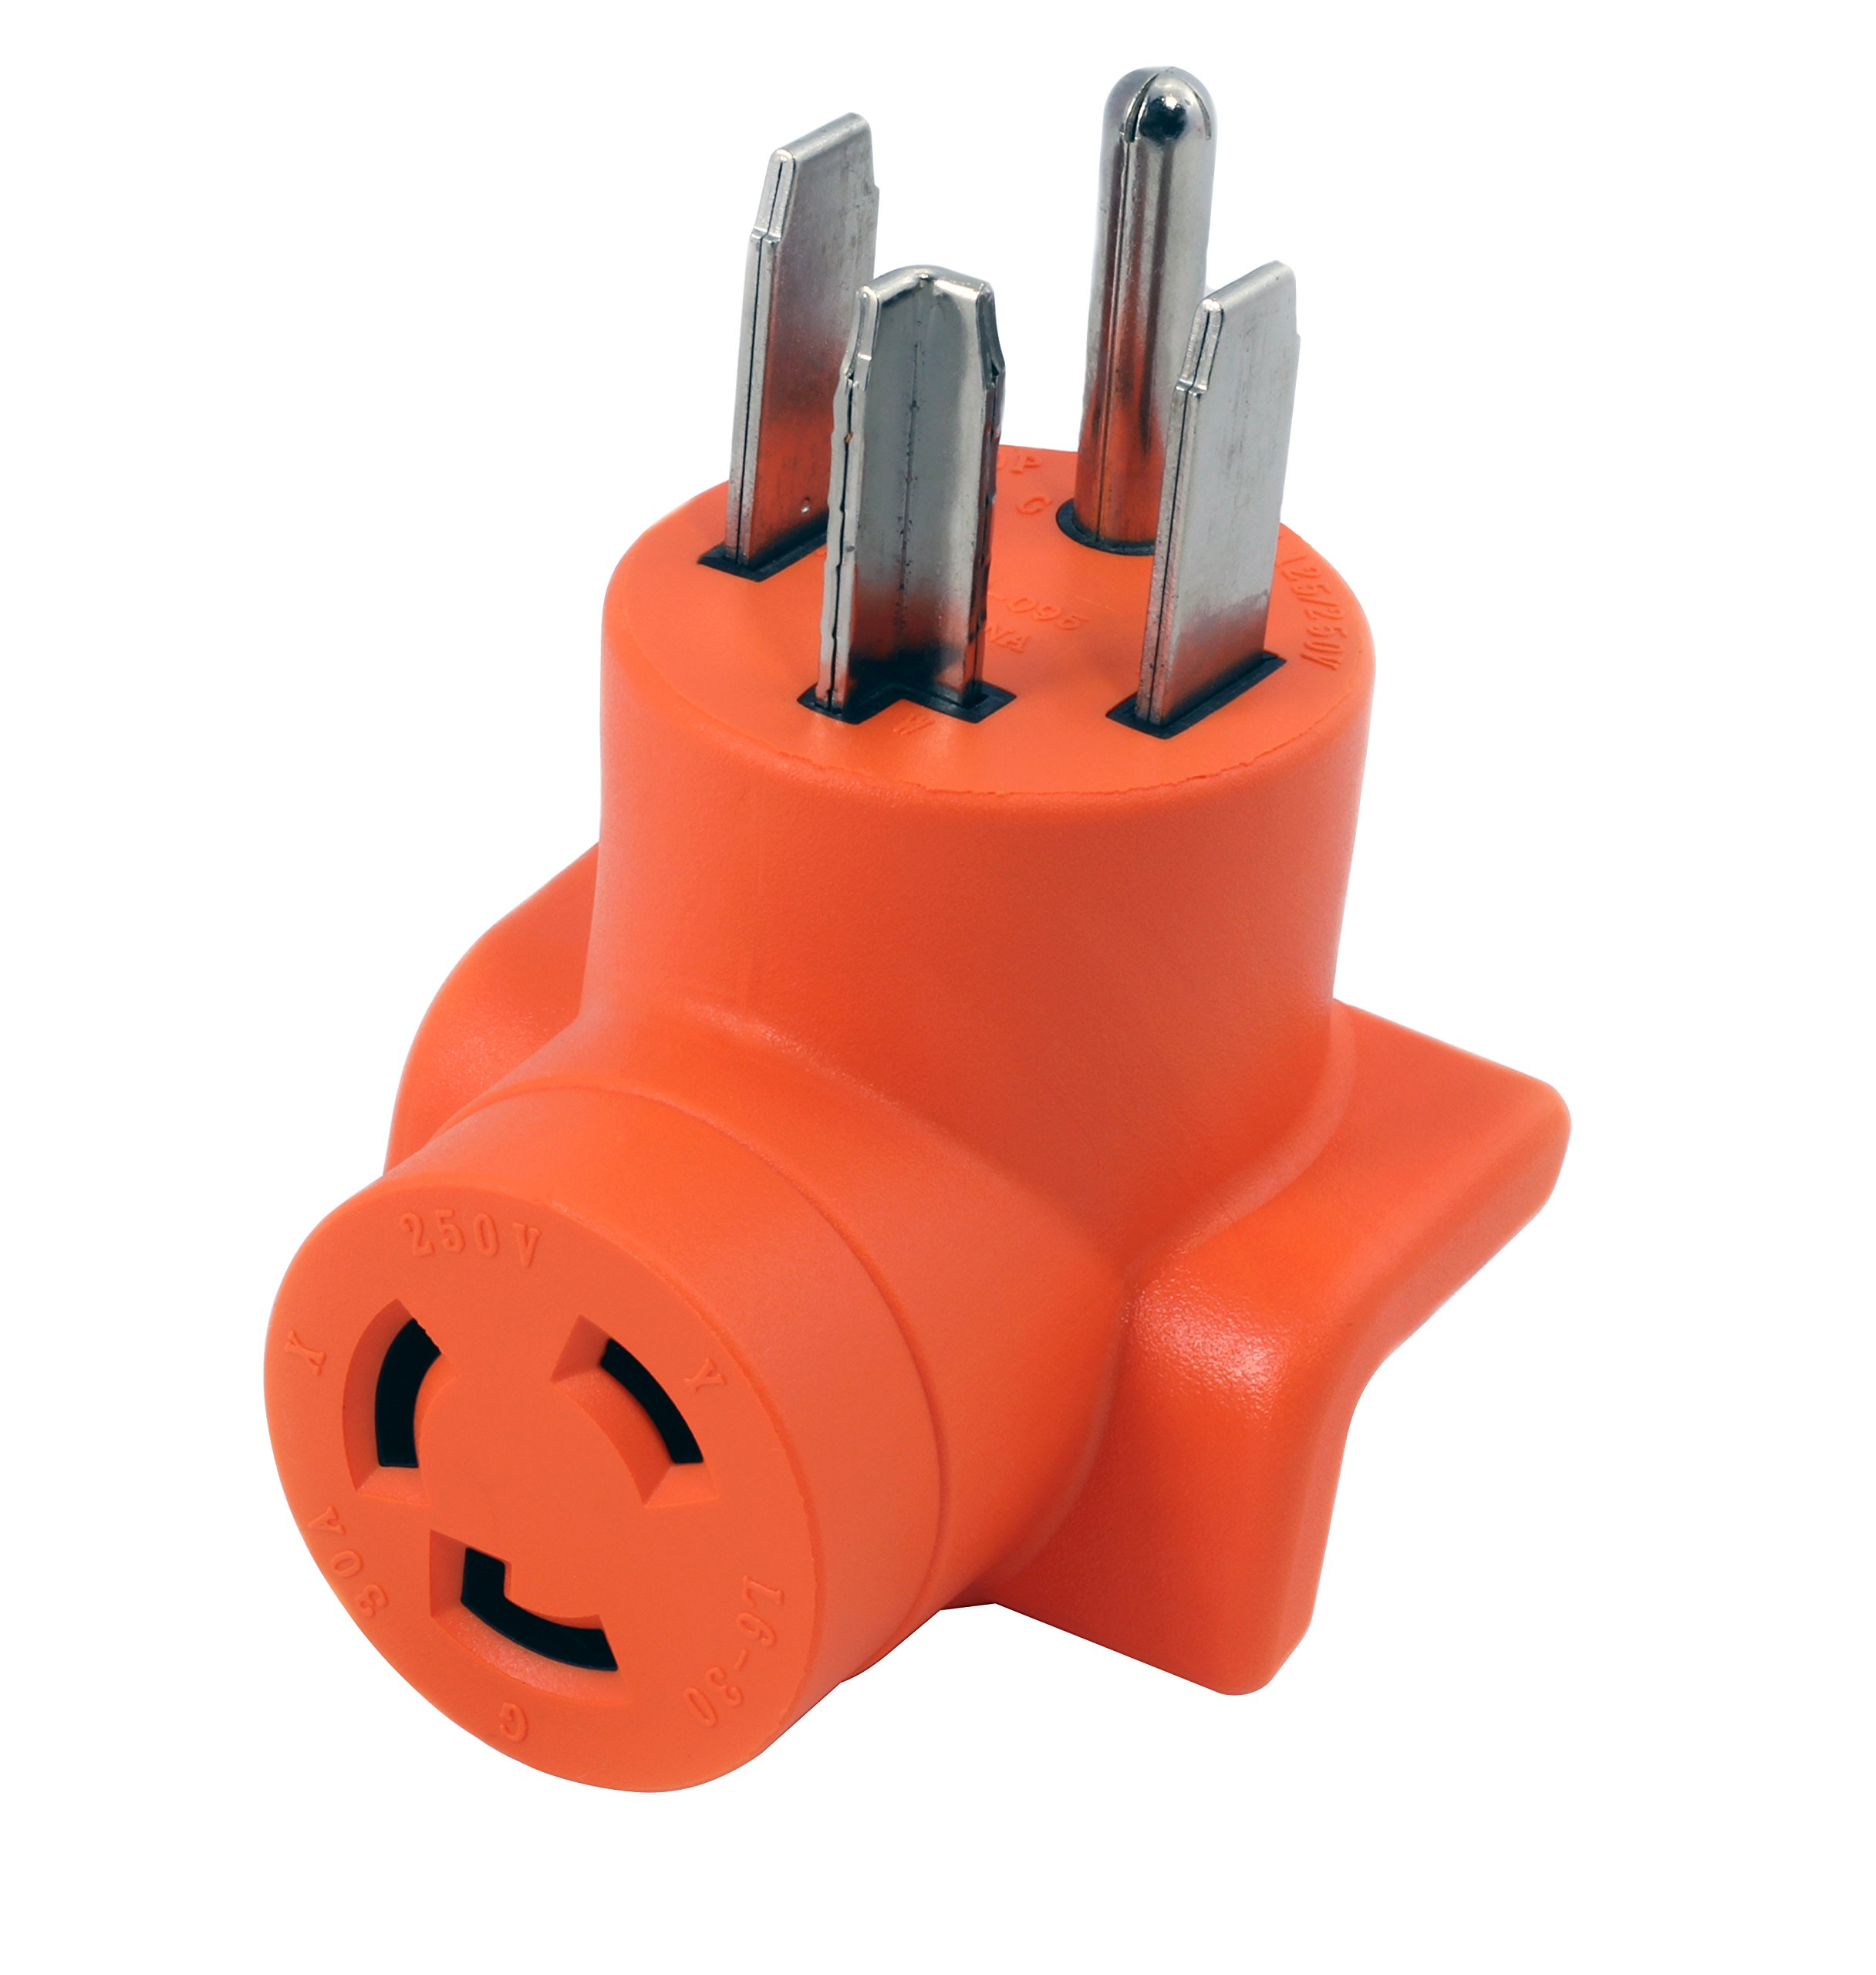 AC WORKS [AD1430L630] Plug Adapter NEMA 14-30P 4-Prong 30Amp Dryer Outlet to L6-30R 30Amp 250Volt Locking Female Connector